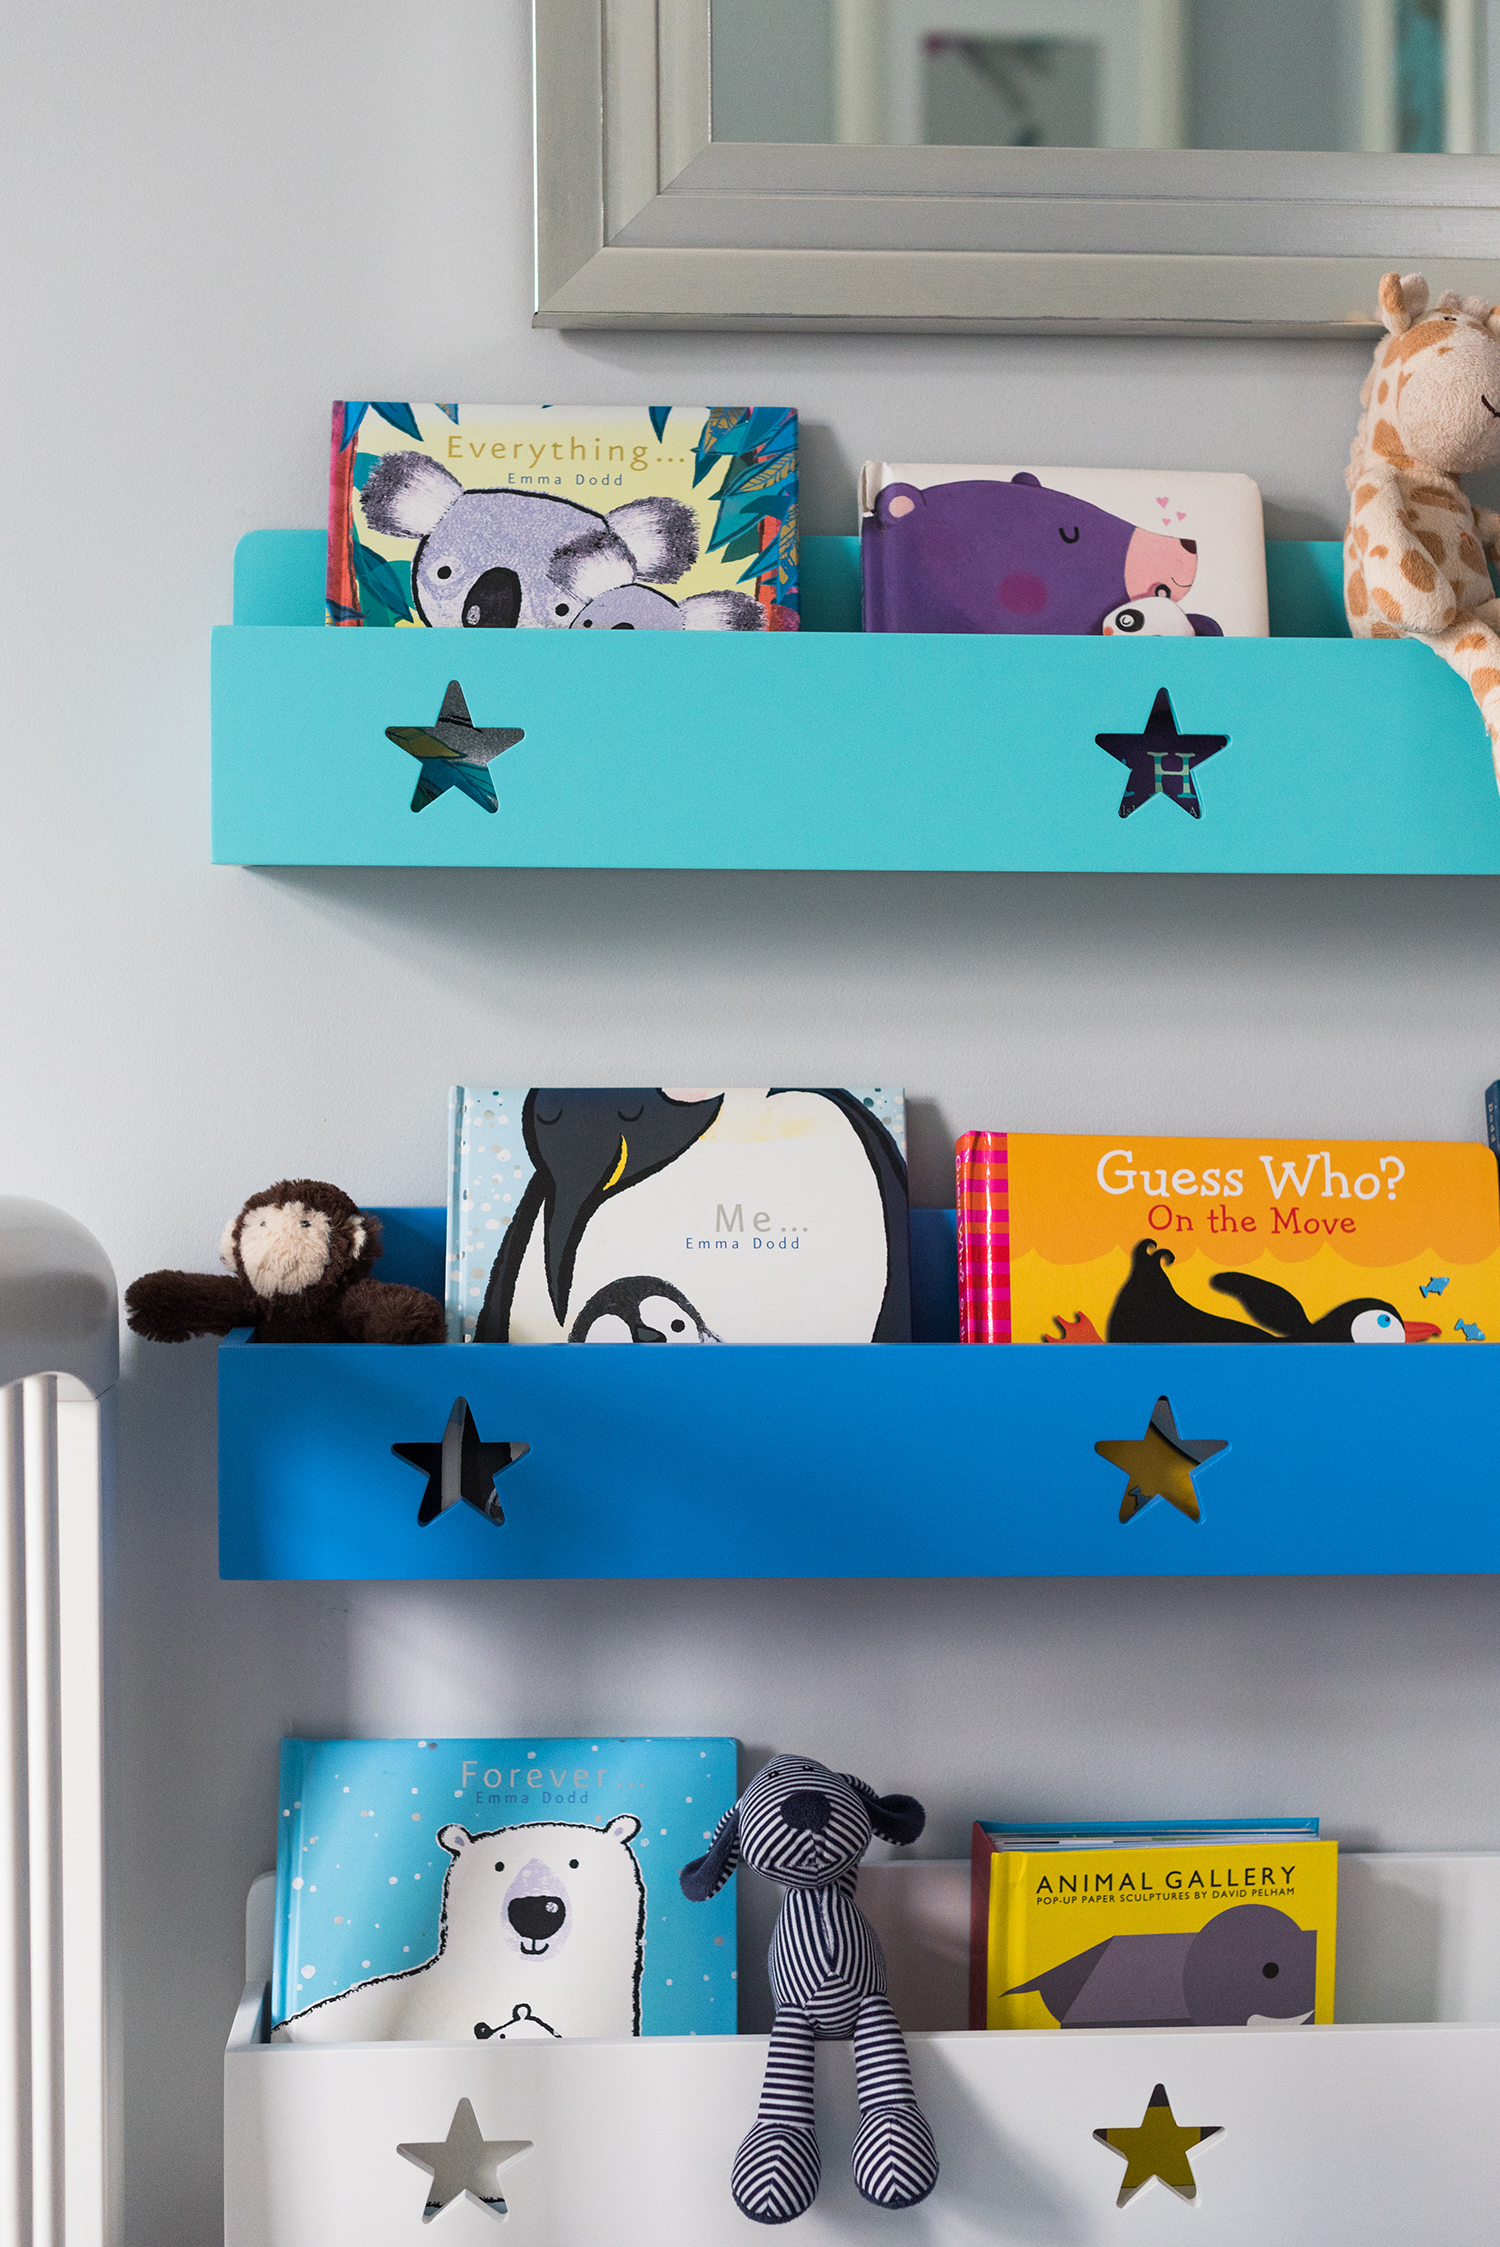 Close up view of bookshelf in peacock coloured unisex nursery